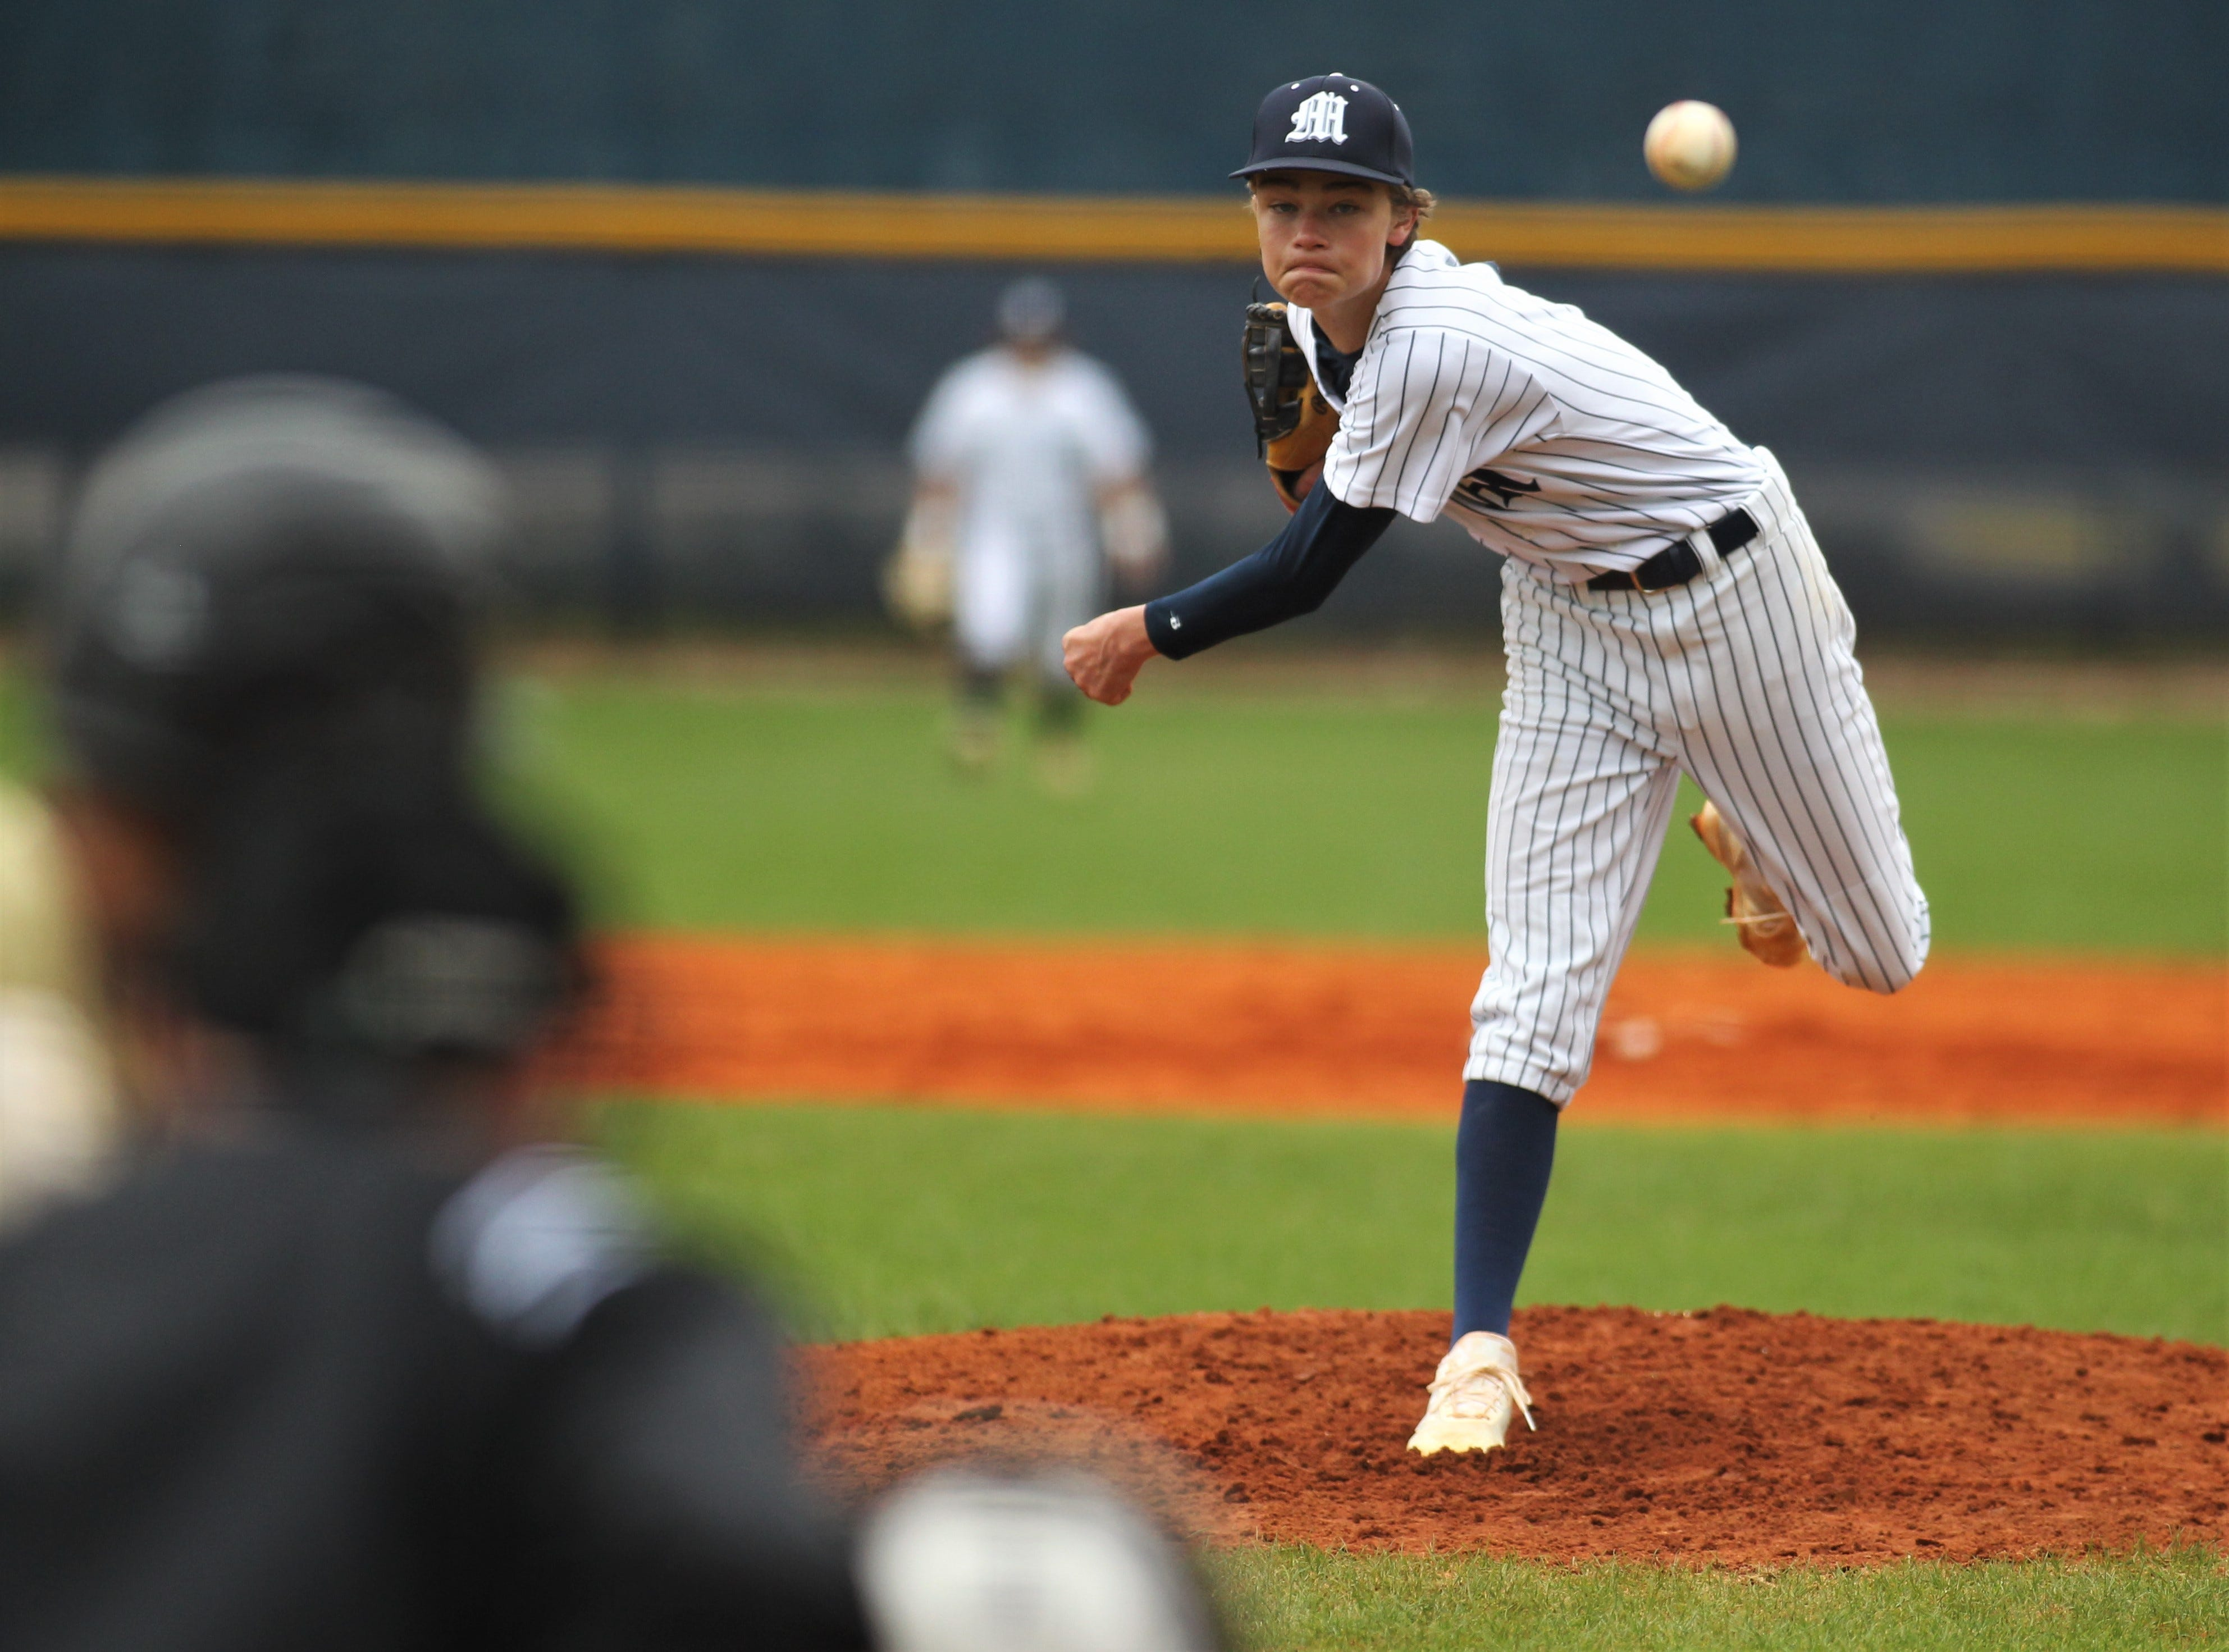 Maclay's Ryker Chavis throws a pitch as Liberty County's baseball team went on the road to beat Maclay 8-2 on Saturday, March 16, 2019. The Bulldogs played their first game following their head coach Corey Crum's tragic death six days ago.